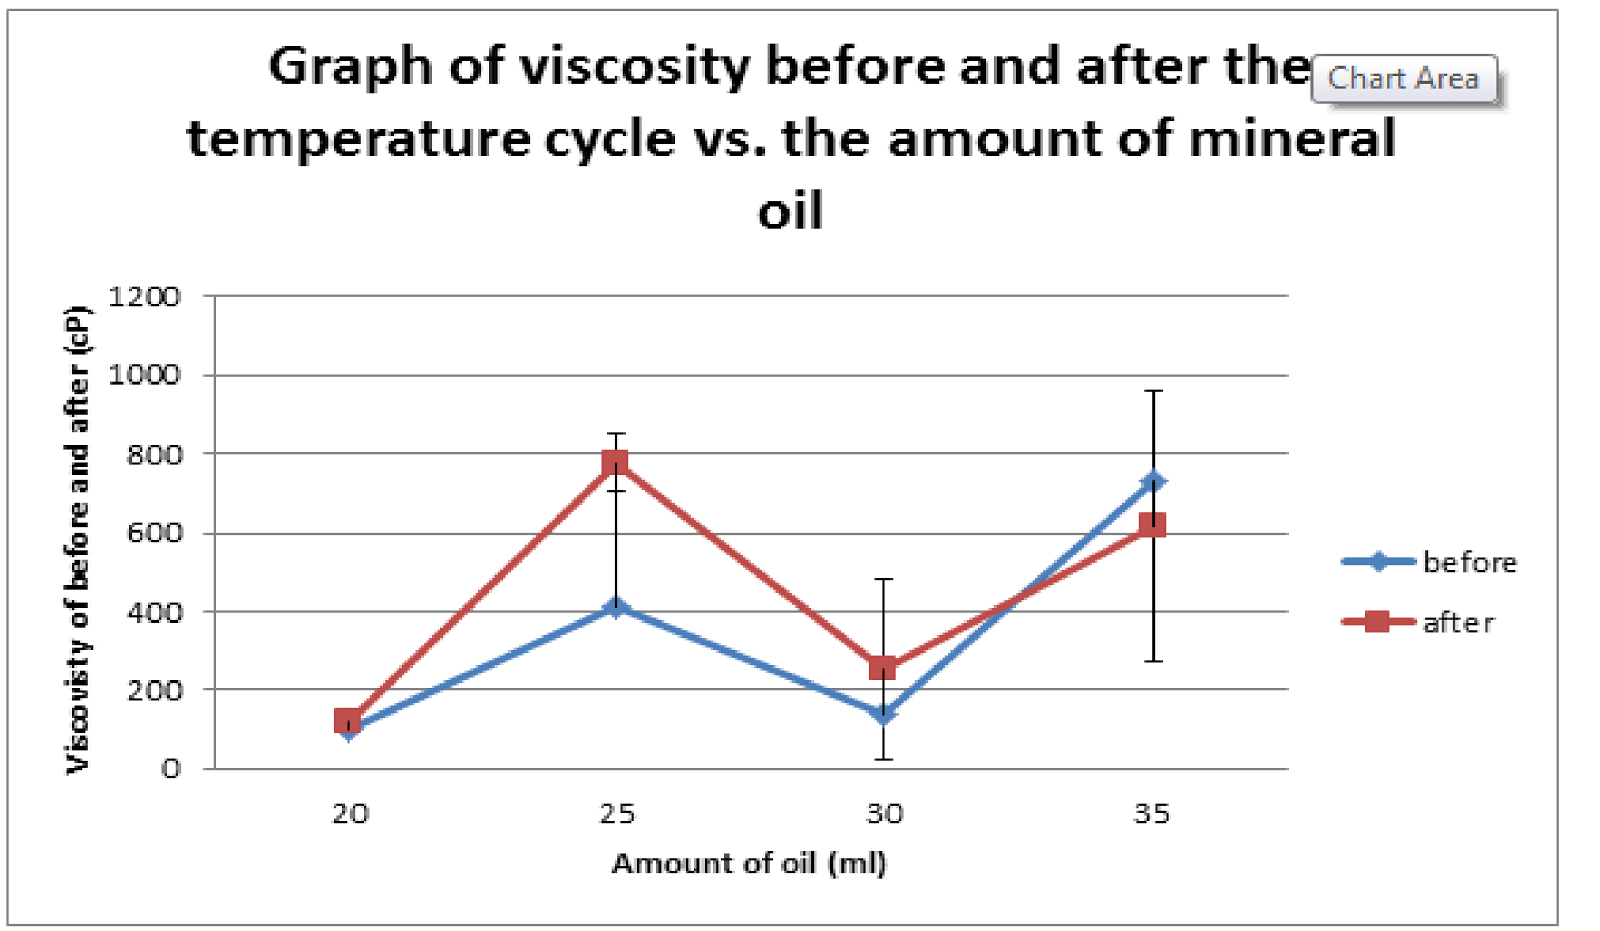 arbnor emini lab report viscosity The eddy viscosity is determined from a single turbulence length scale  documents similar to design of wind tunnel skip carousel carousel previous carousel next cfd_wind_tunnel_combustión uploaded by jazmin de la cruz home made wind tunnel plans uploaded by  hot wire lab report uploaded by eddie ball phase vi .